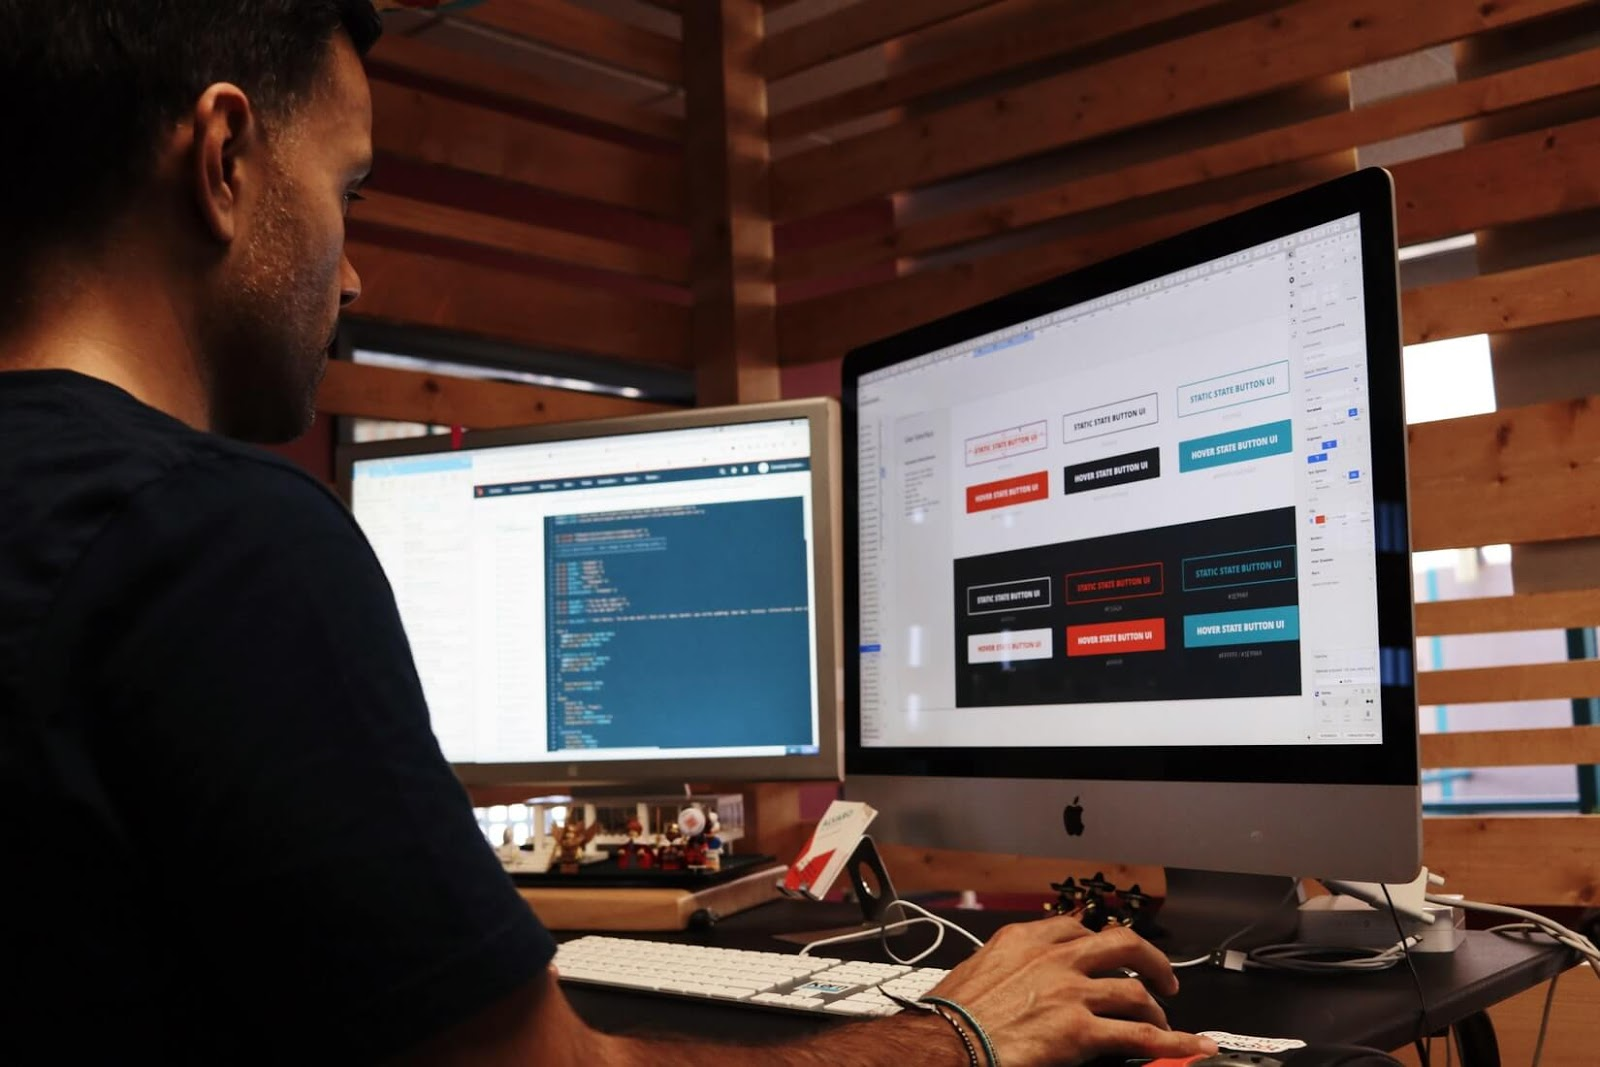 4 Decisions to Make that are Key to Your Web Design Process